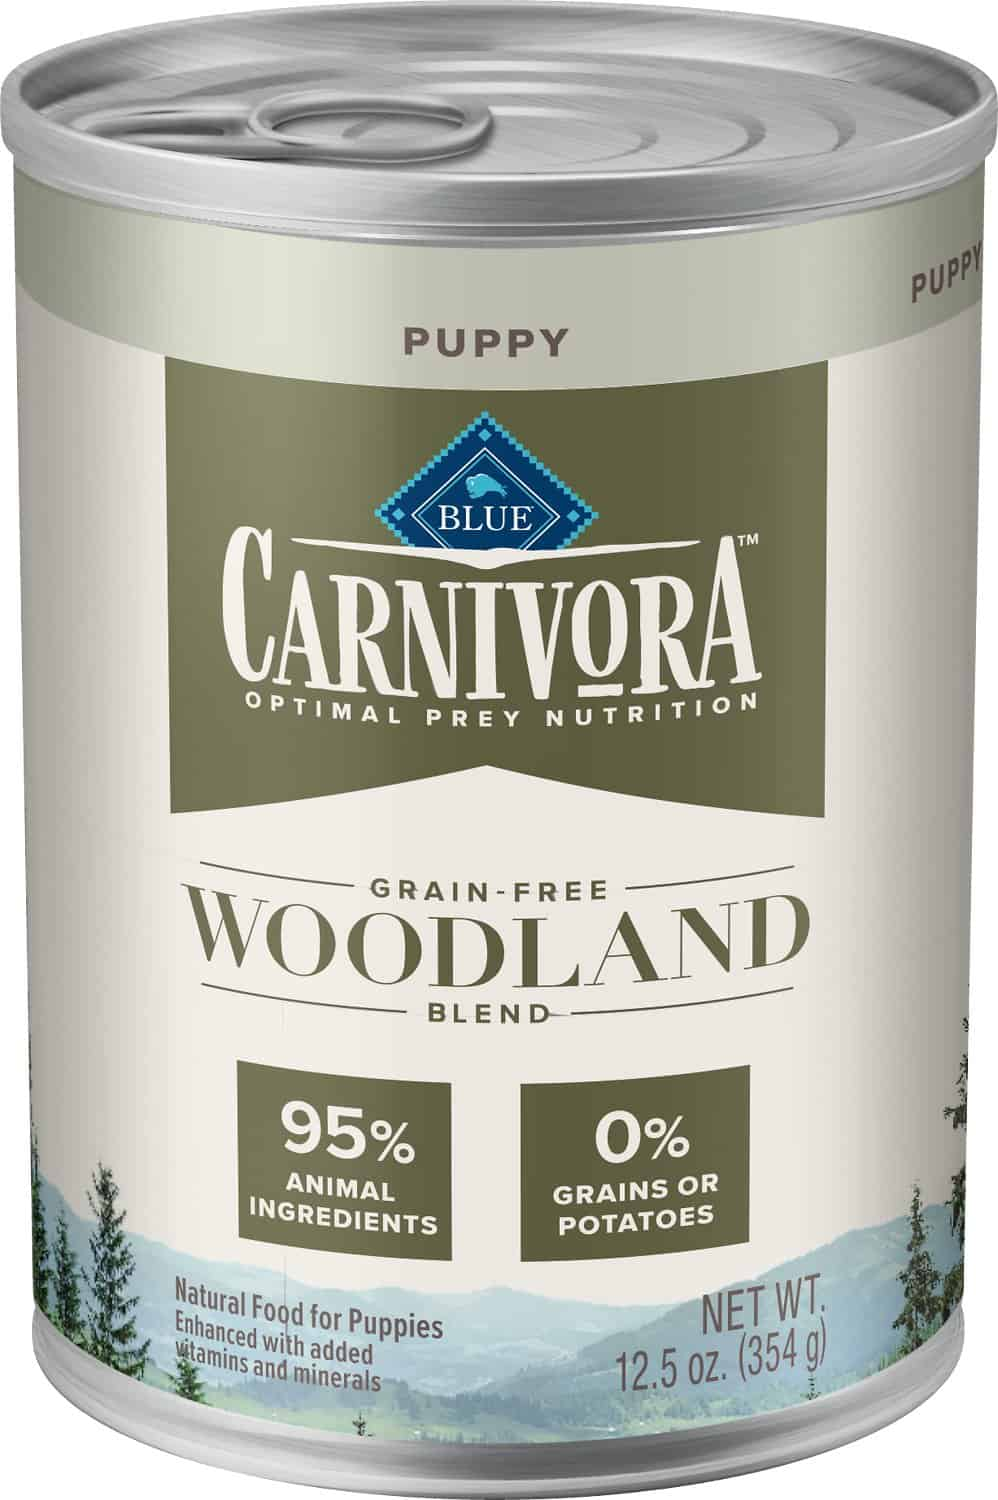 Blue Buffalo Carnivora Review 2021: The Pea & Potato Free Dog Food Line 22